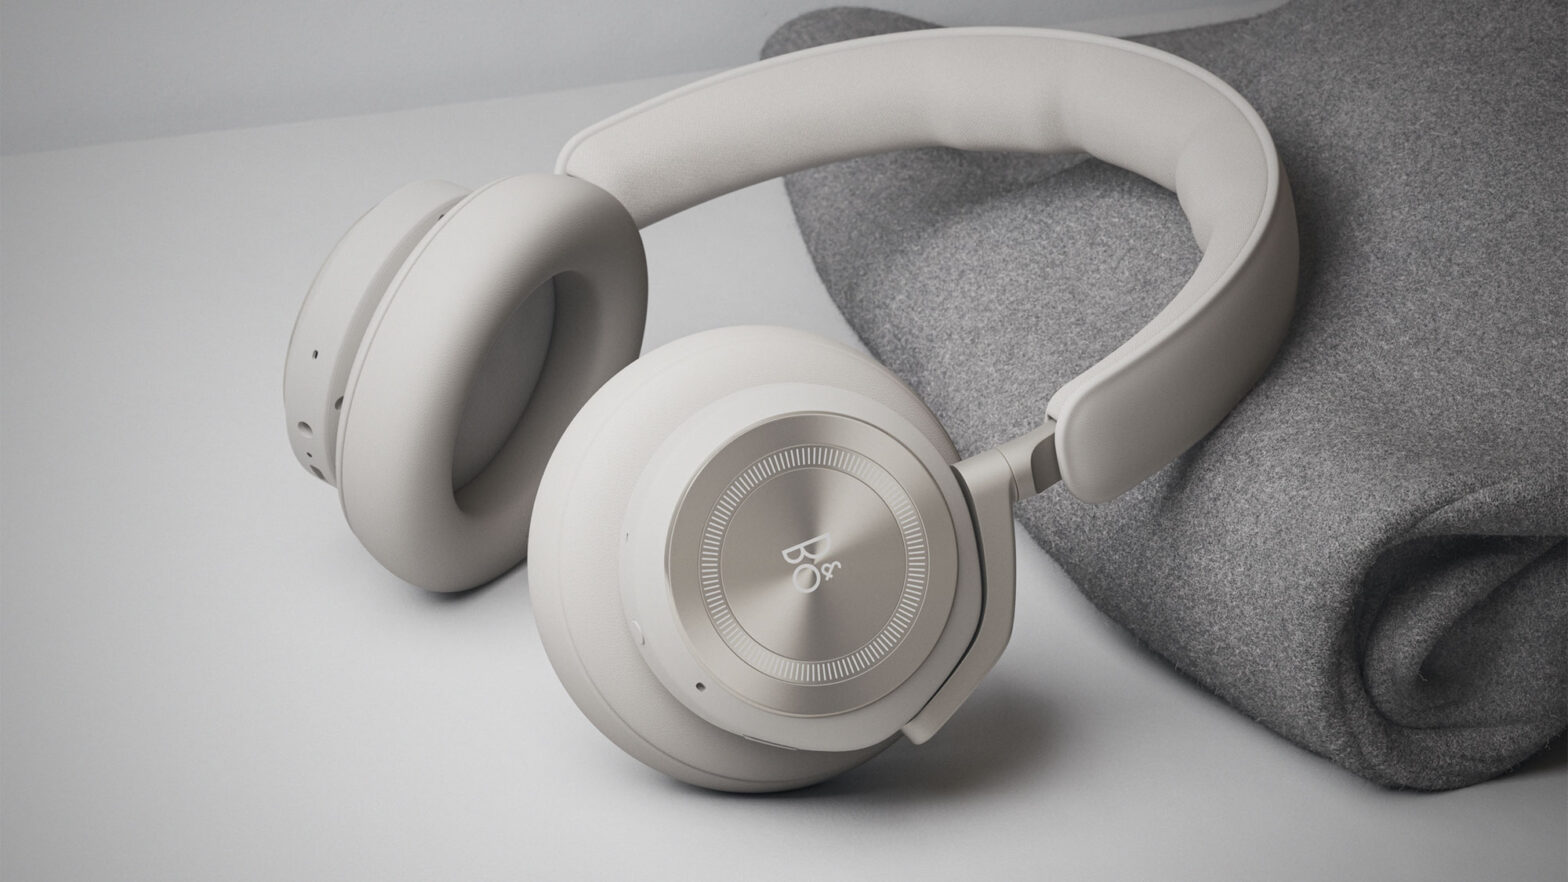 Bang & Olufsen Beoplay HX ANC Headphones